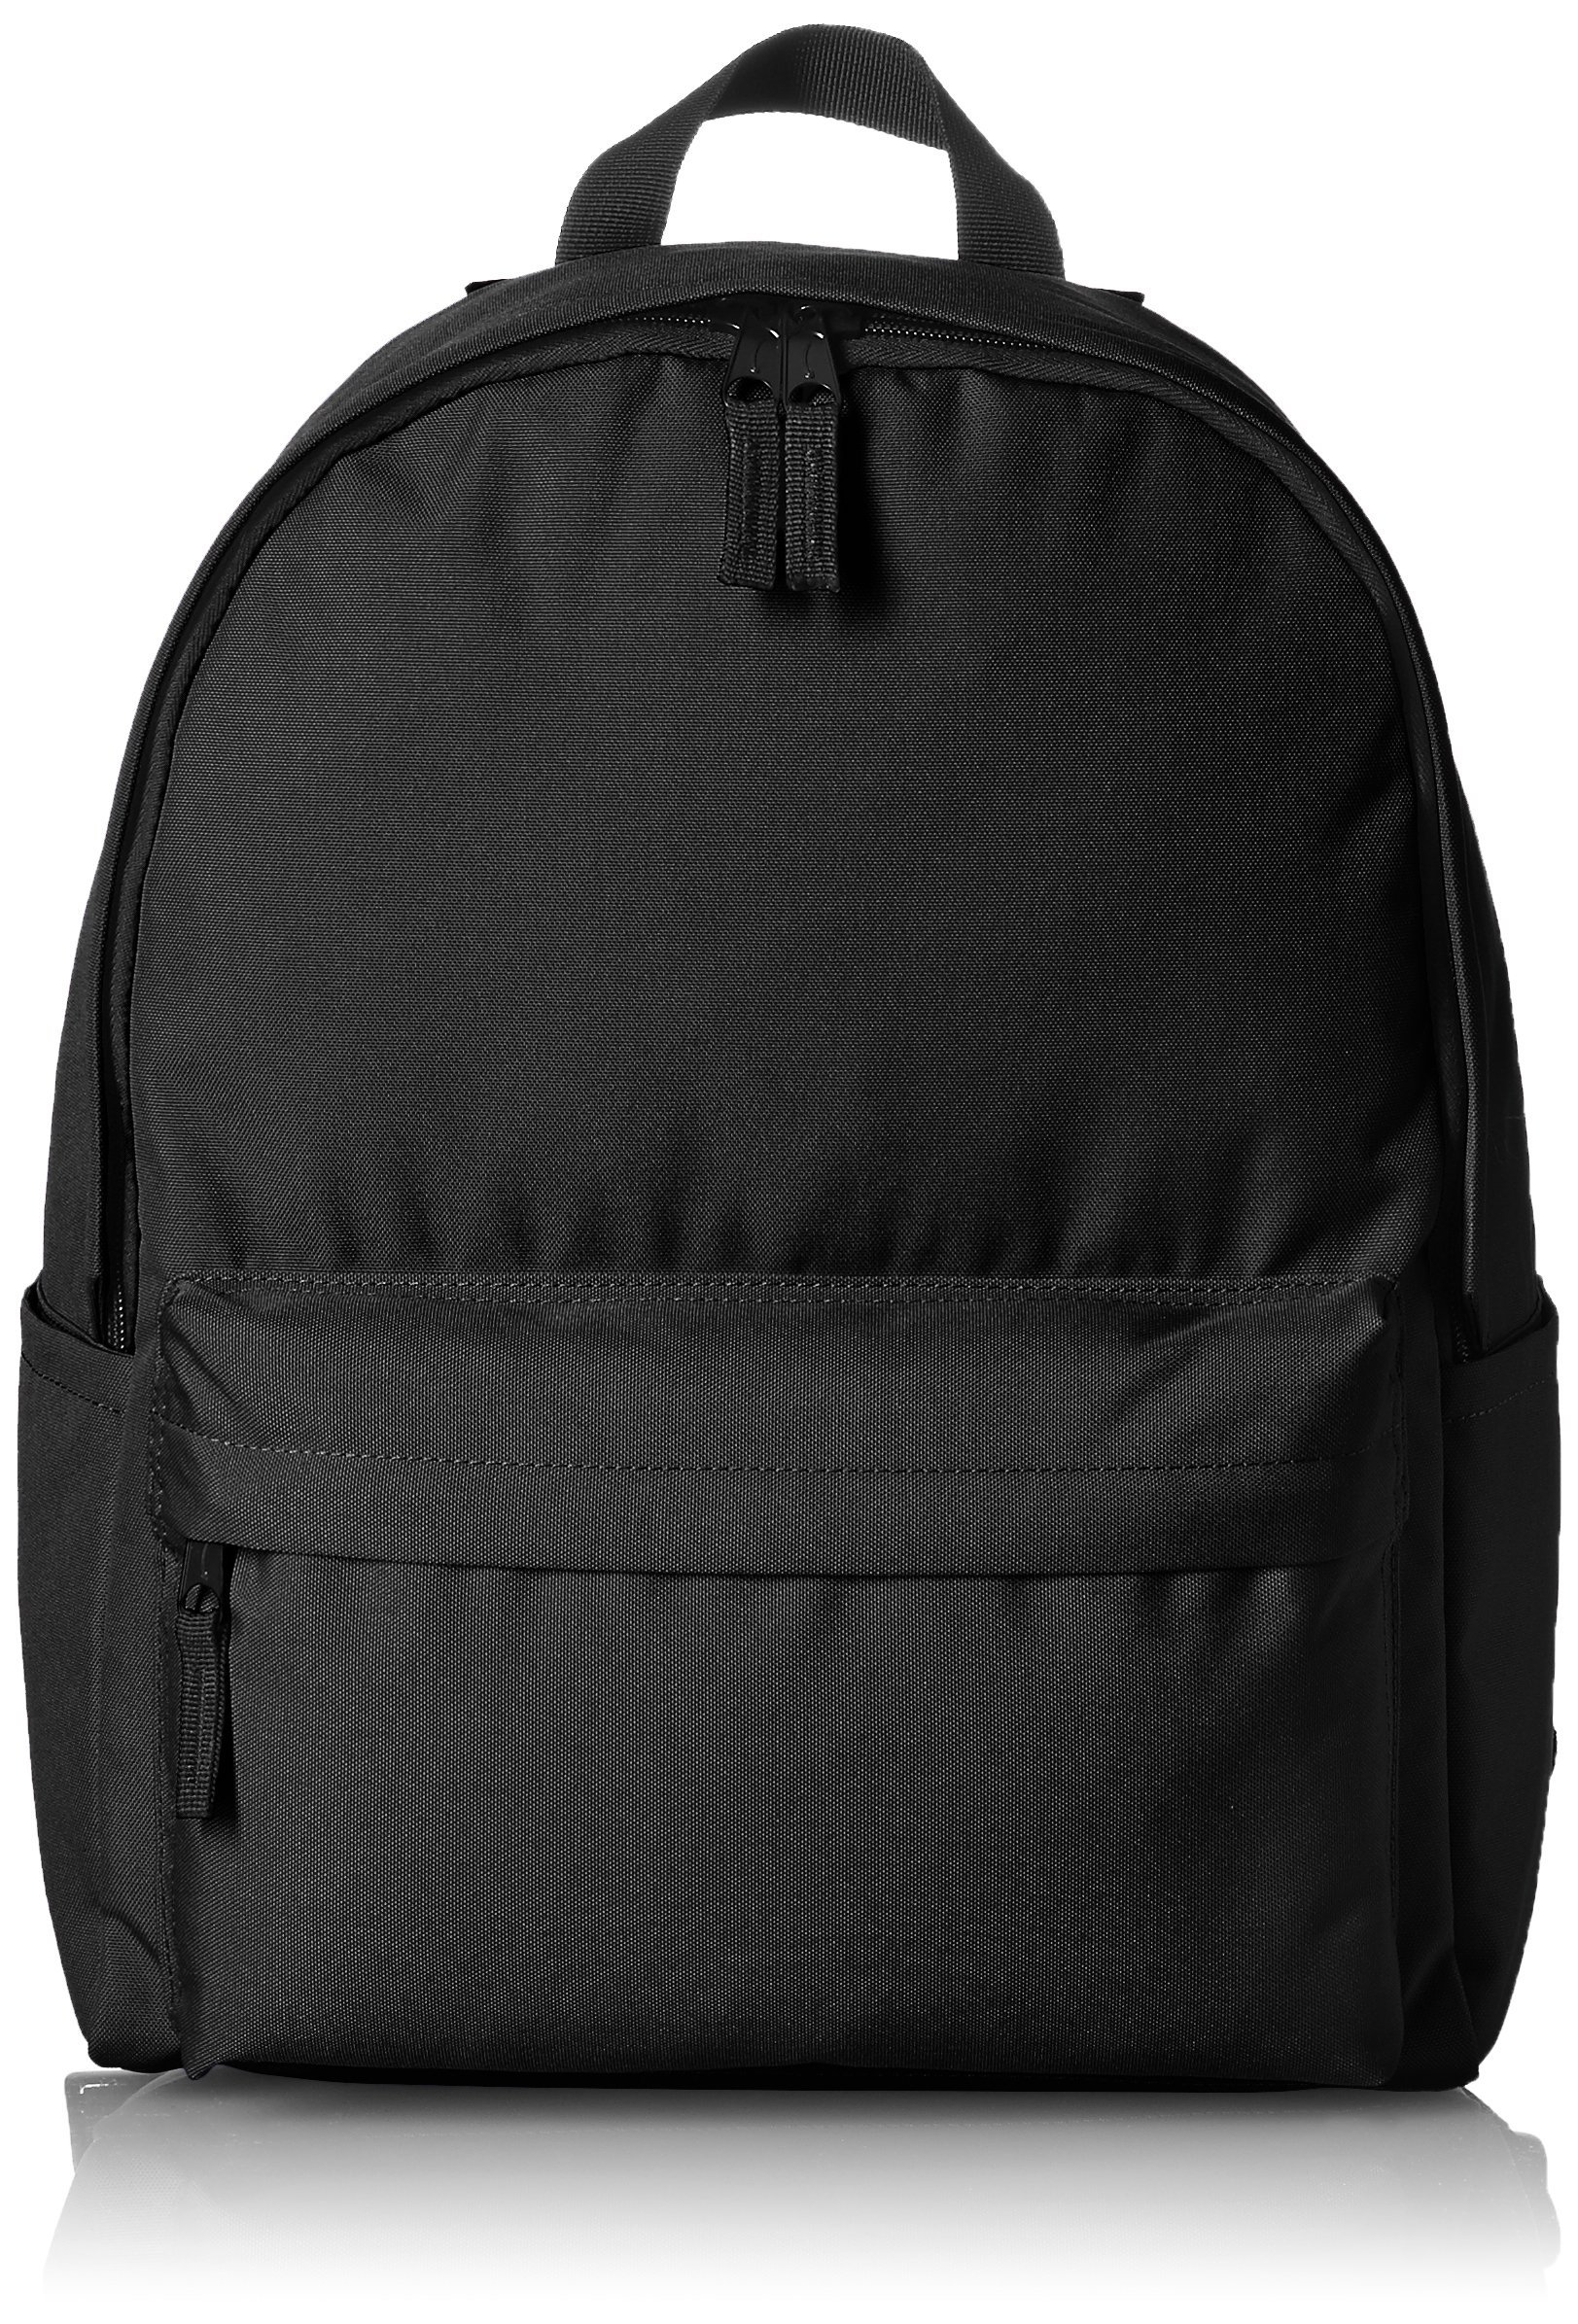 AmazonBasics Classic Backpack - Black, 24-Pack